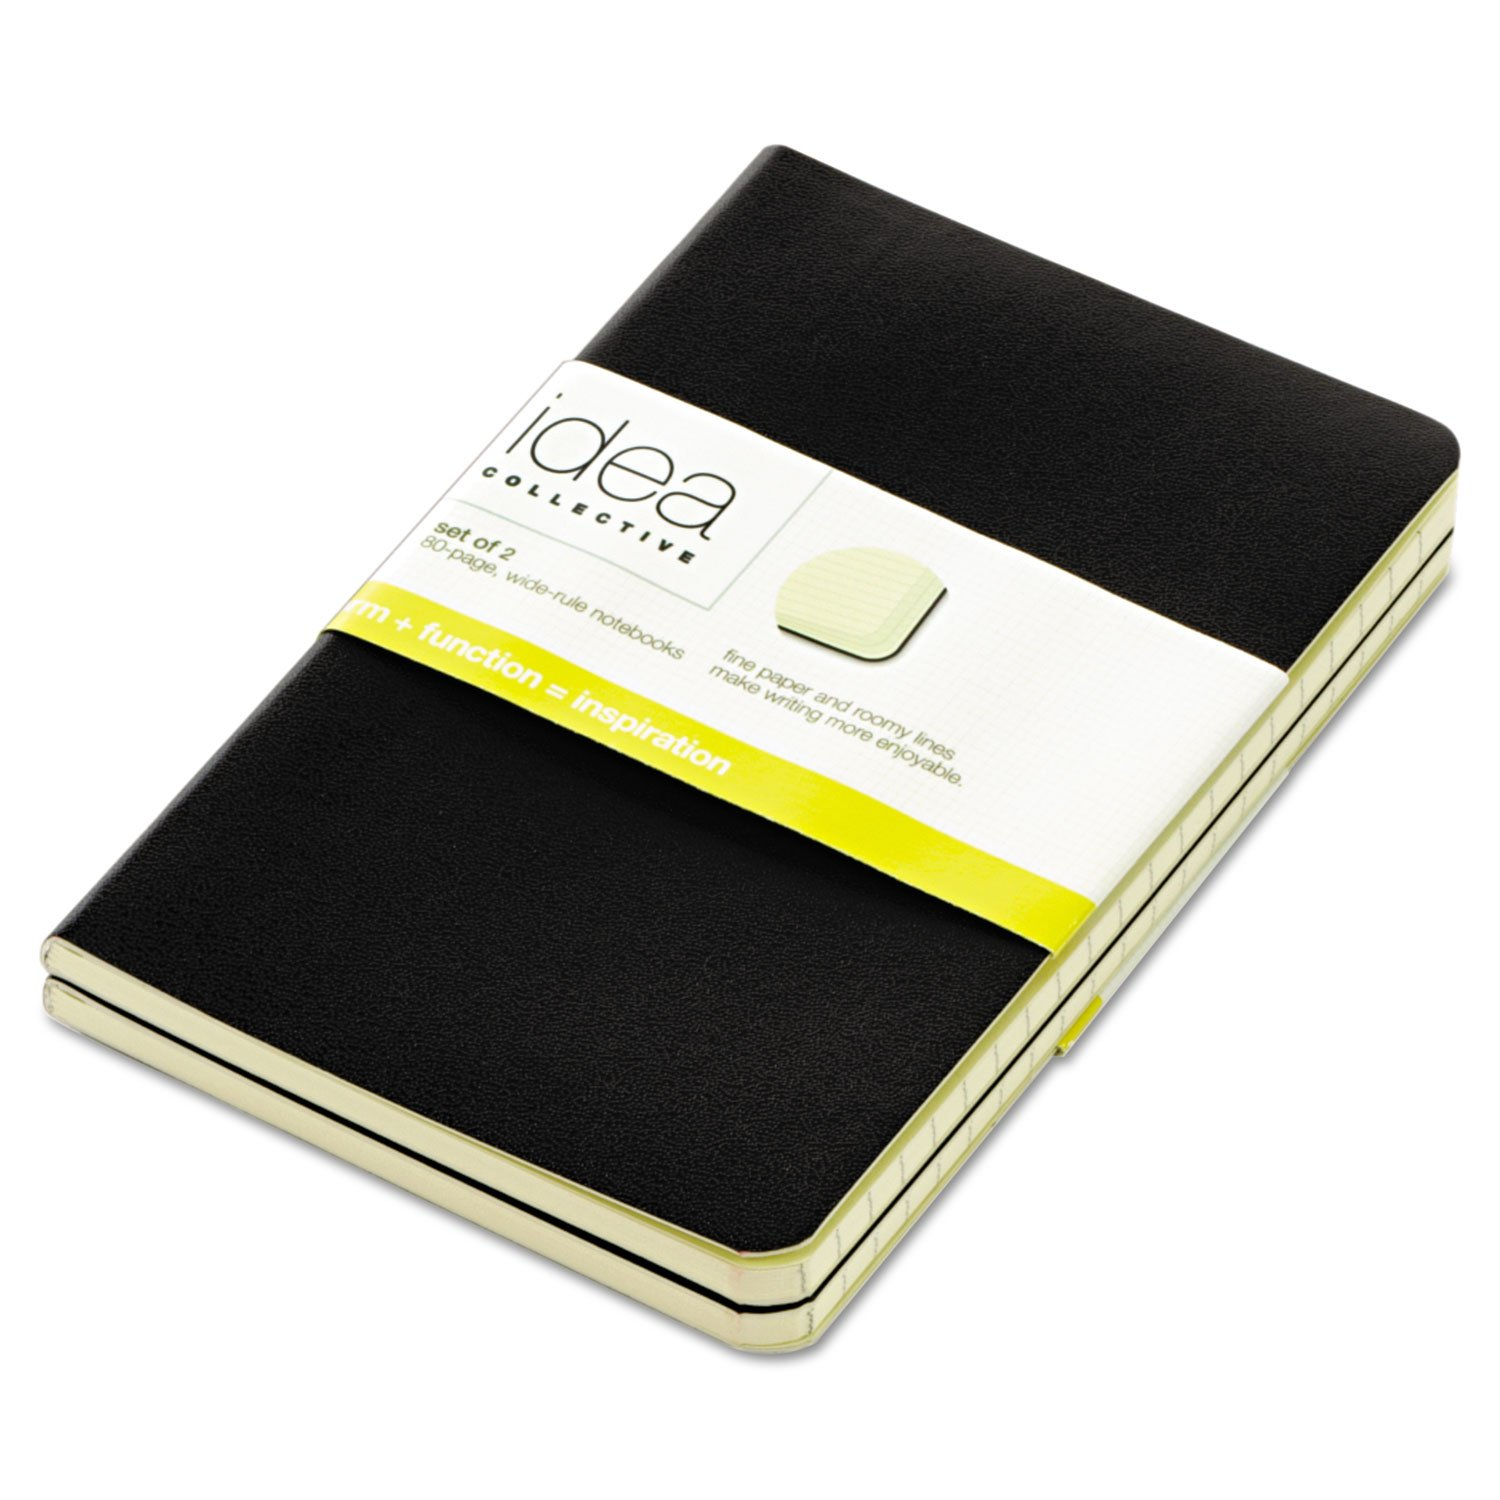 TOPS 56877 Idea Collective Journal, Soft Cover, Side, 5 1/2 x 3 1/2, Black, 40 Sheets, 2/PK